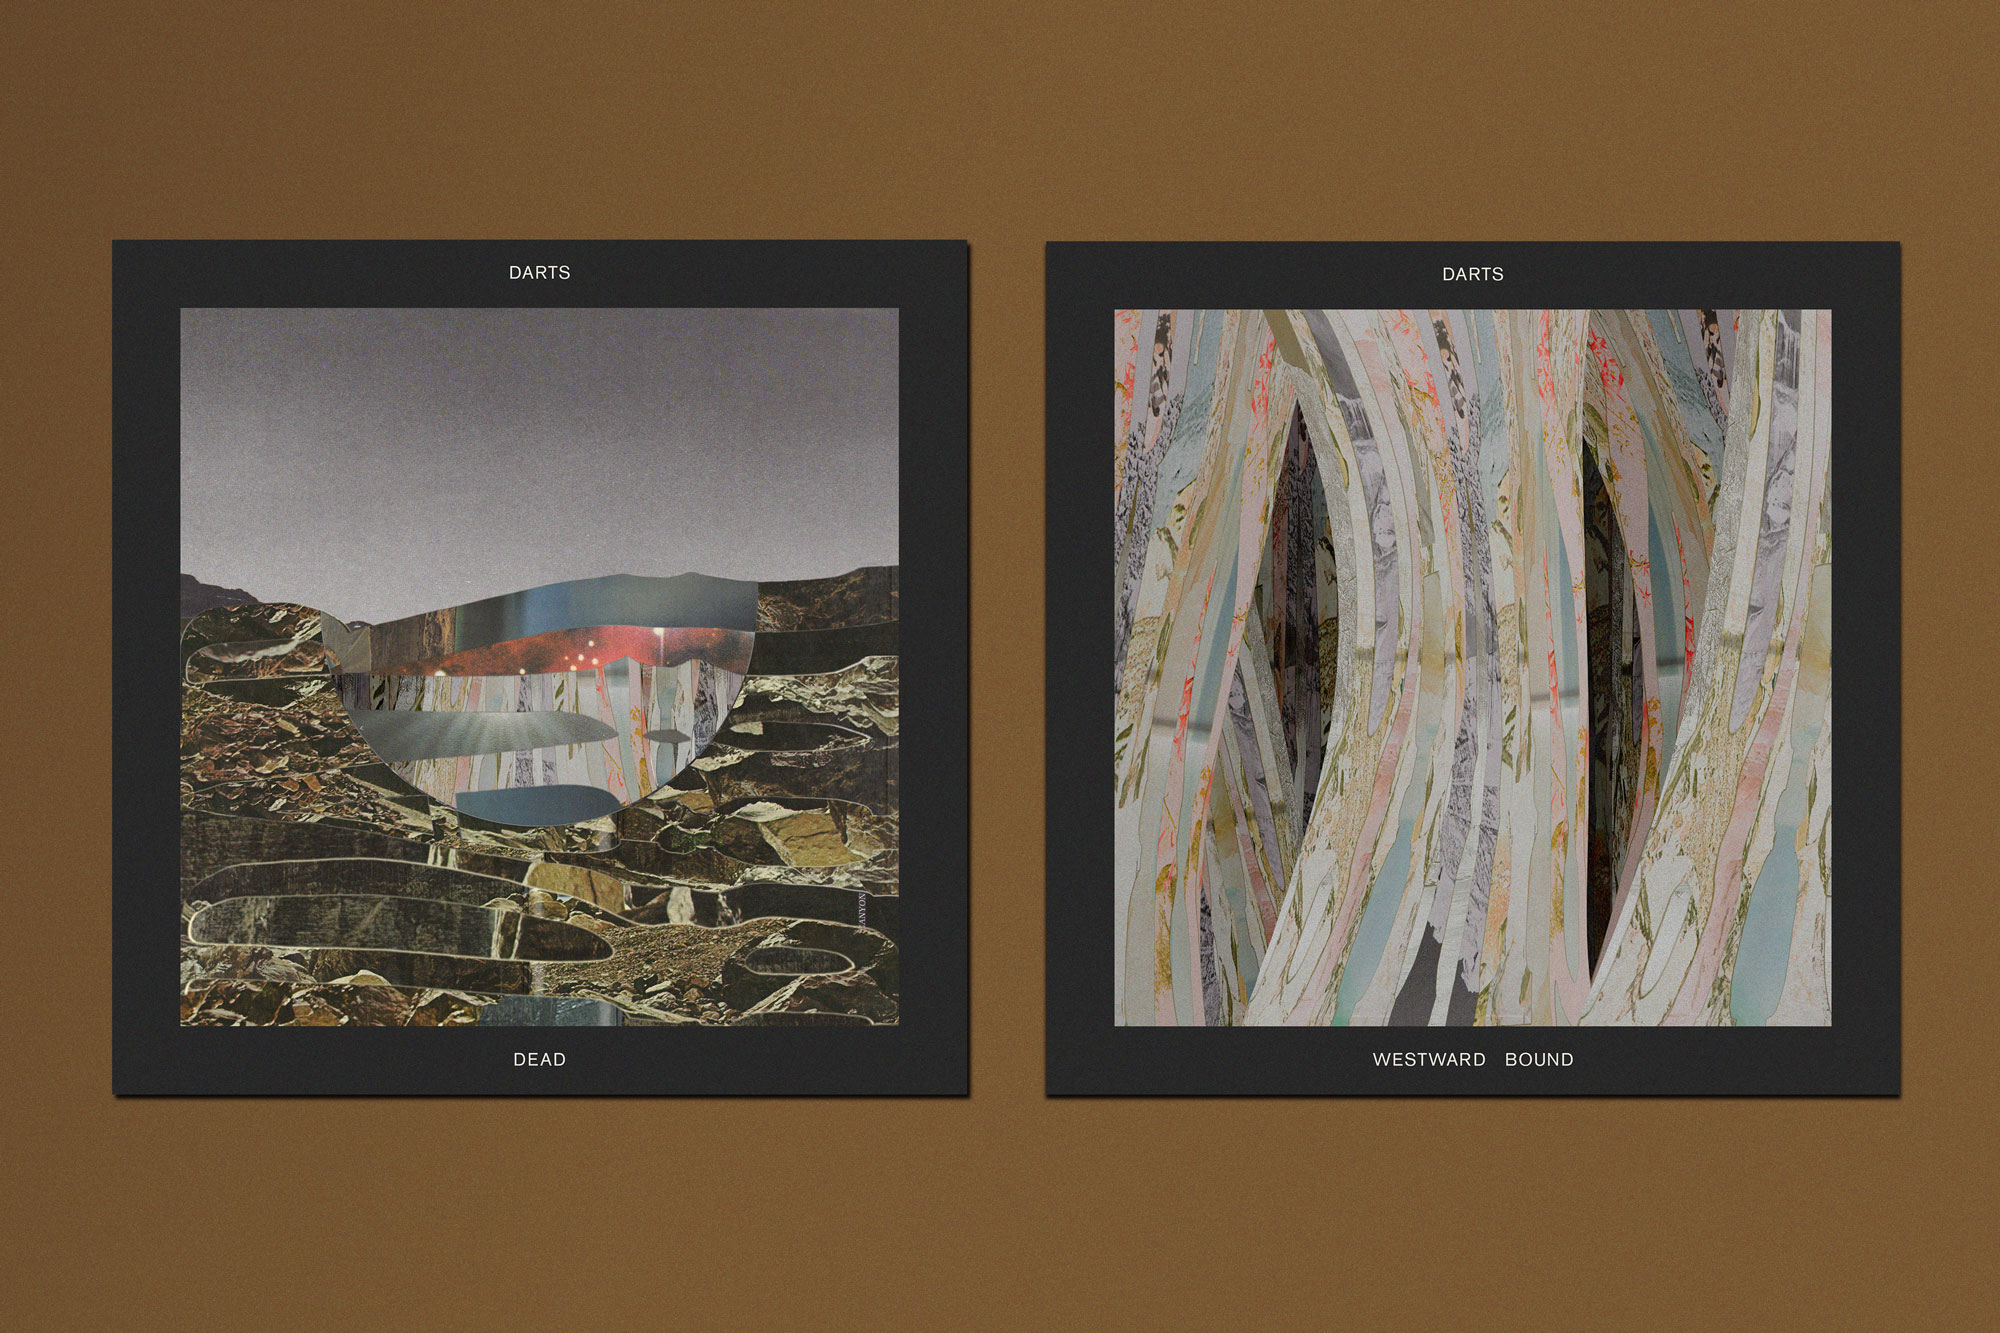 Darts - 'Dead' & 'Westward Bound' single covers.